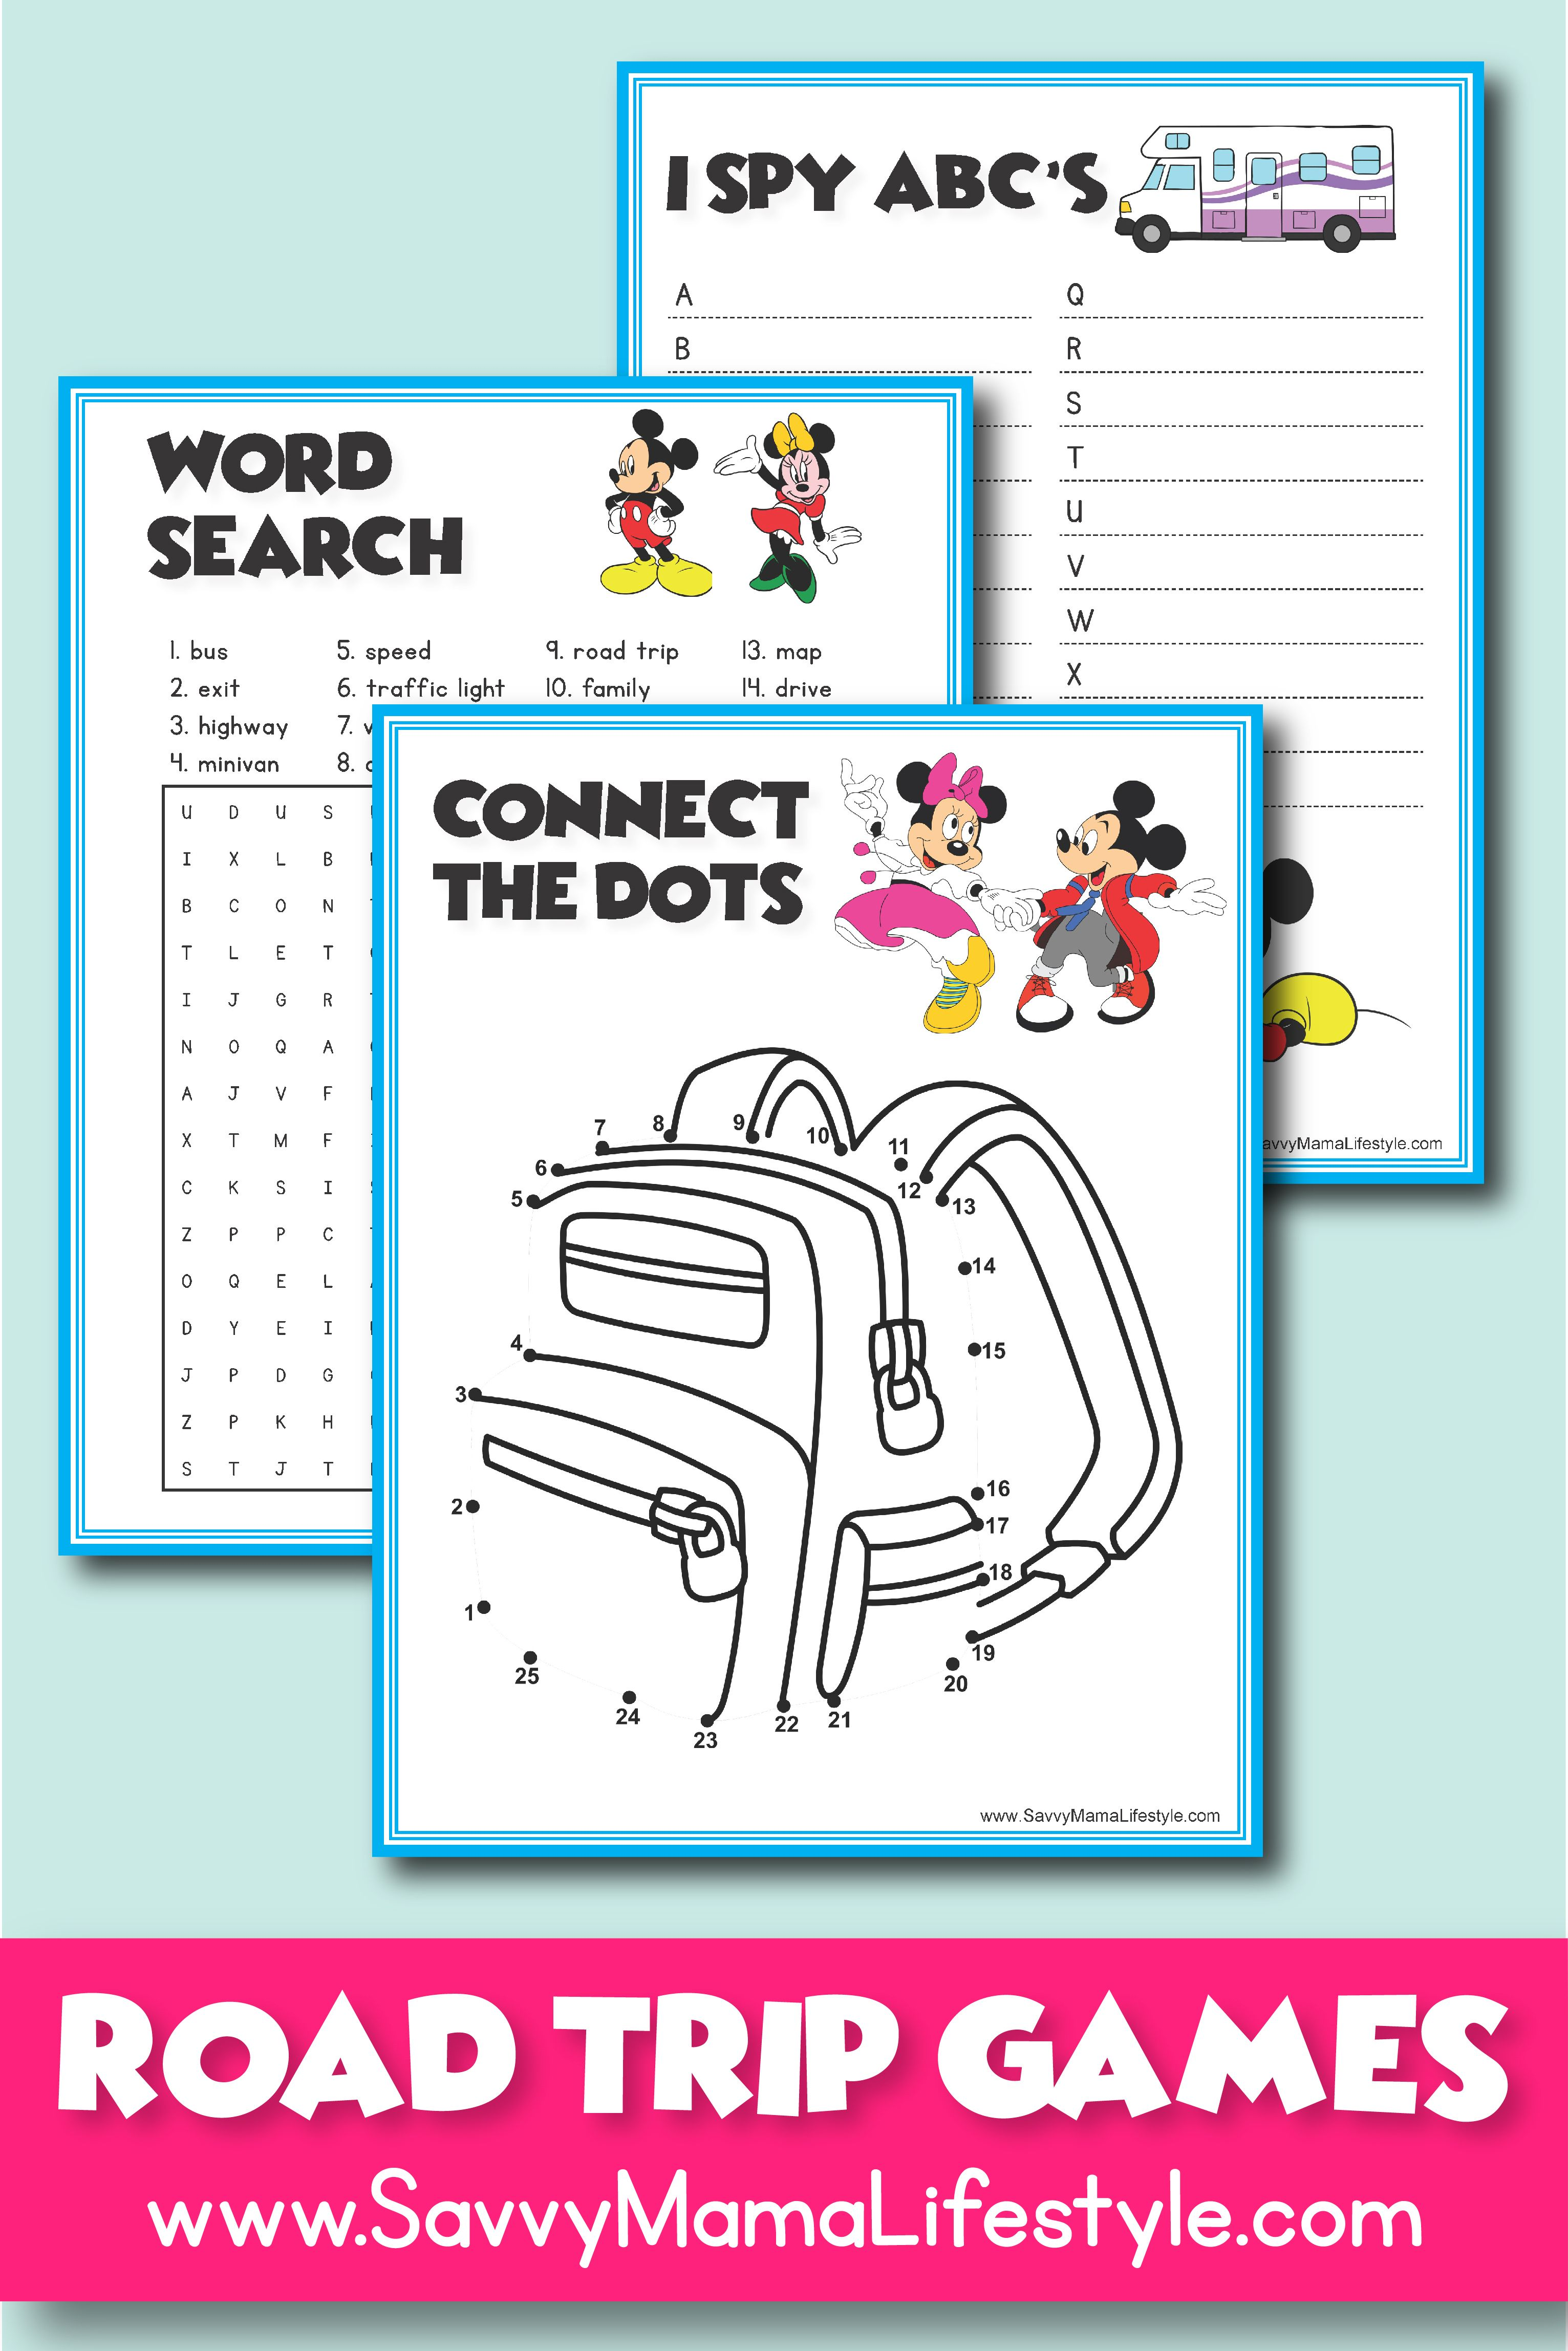 photo regarding Free Printable Road Trip Games identified as 3 Disney Street Vacation Game titles: Cost-free Printable Things to do For The